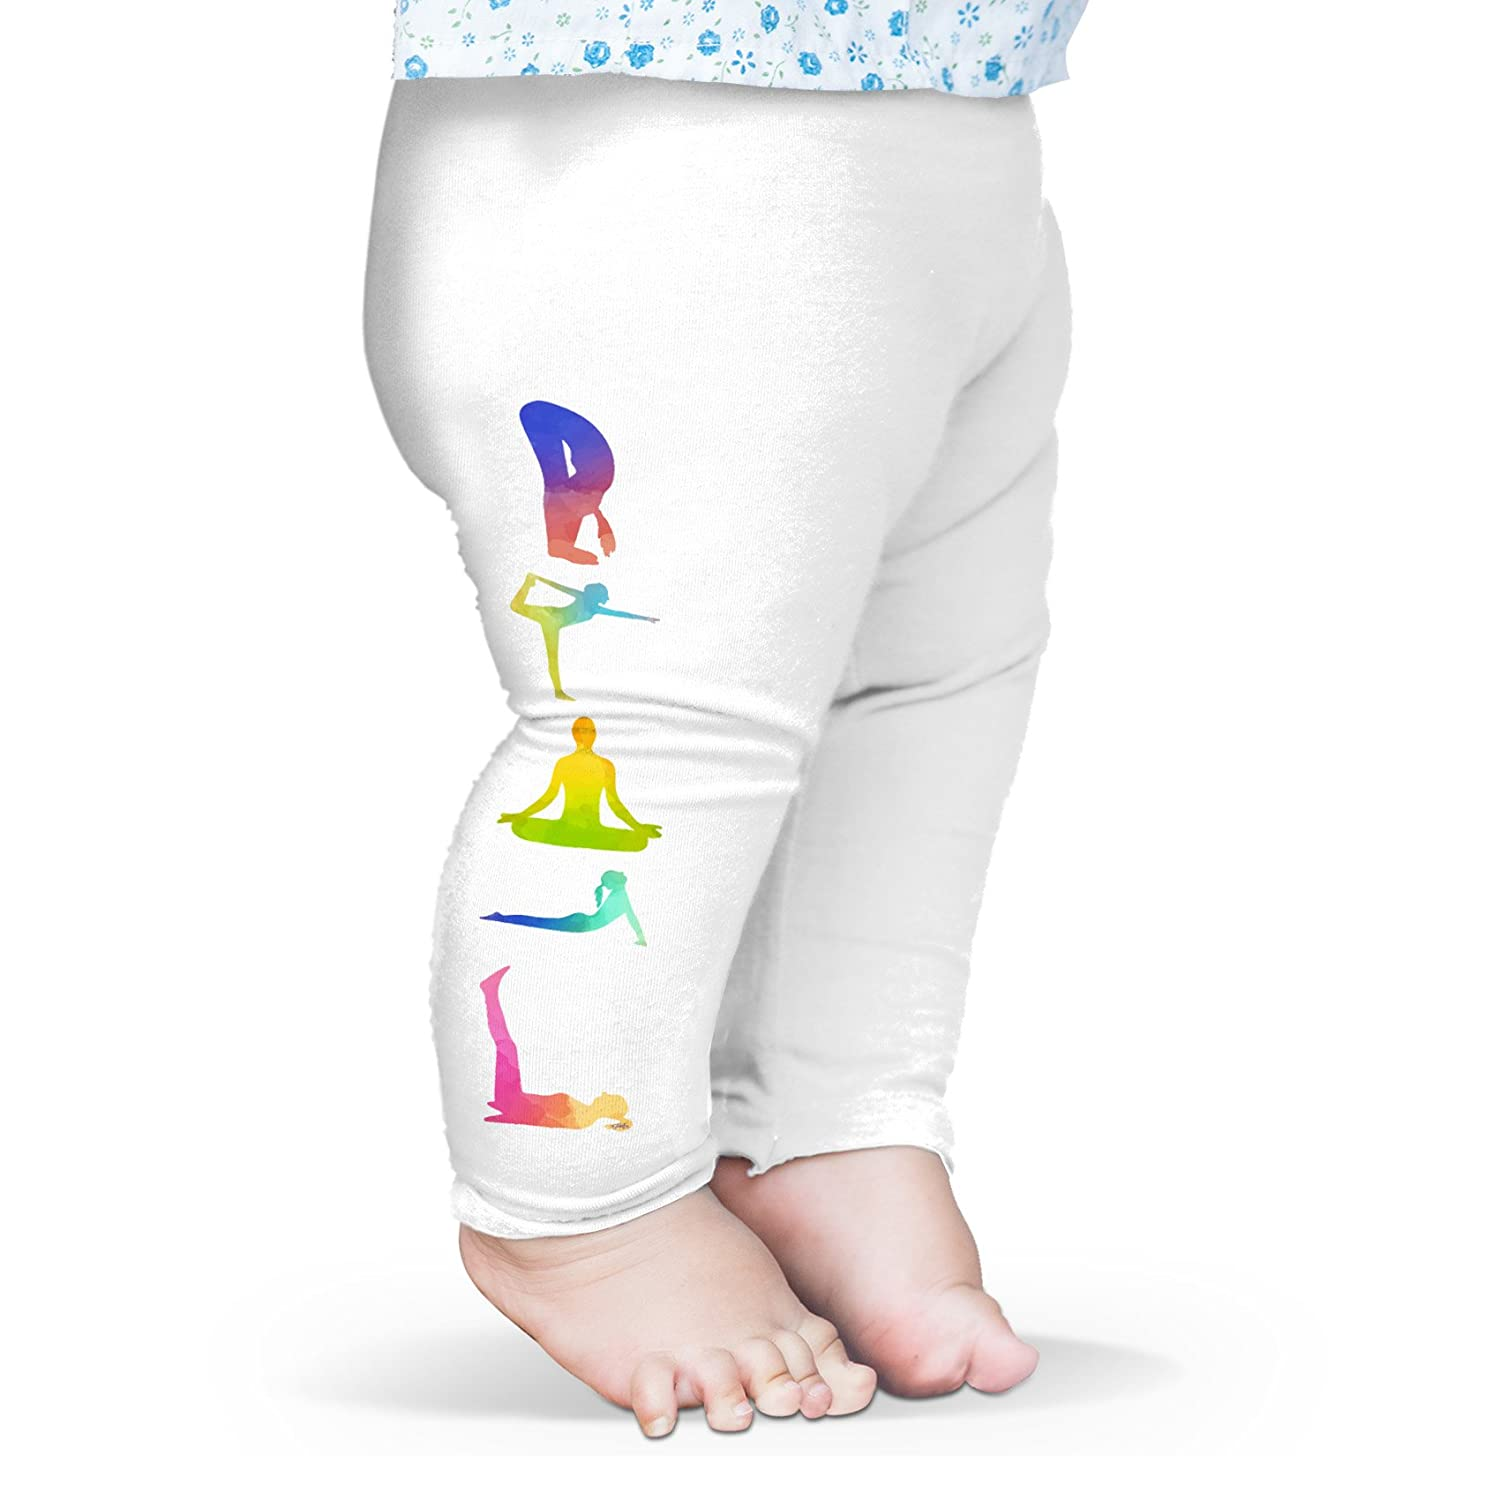 TWISTED ENVY Yoga Poses Baby Printed Leggings Trousers